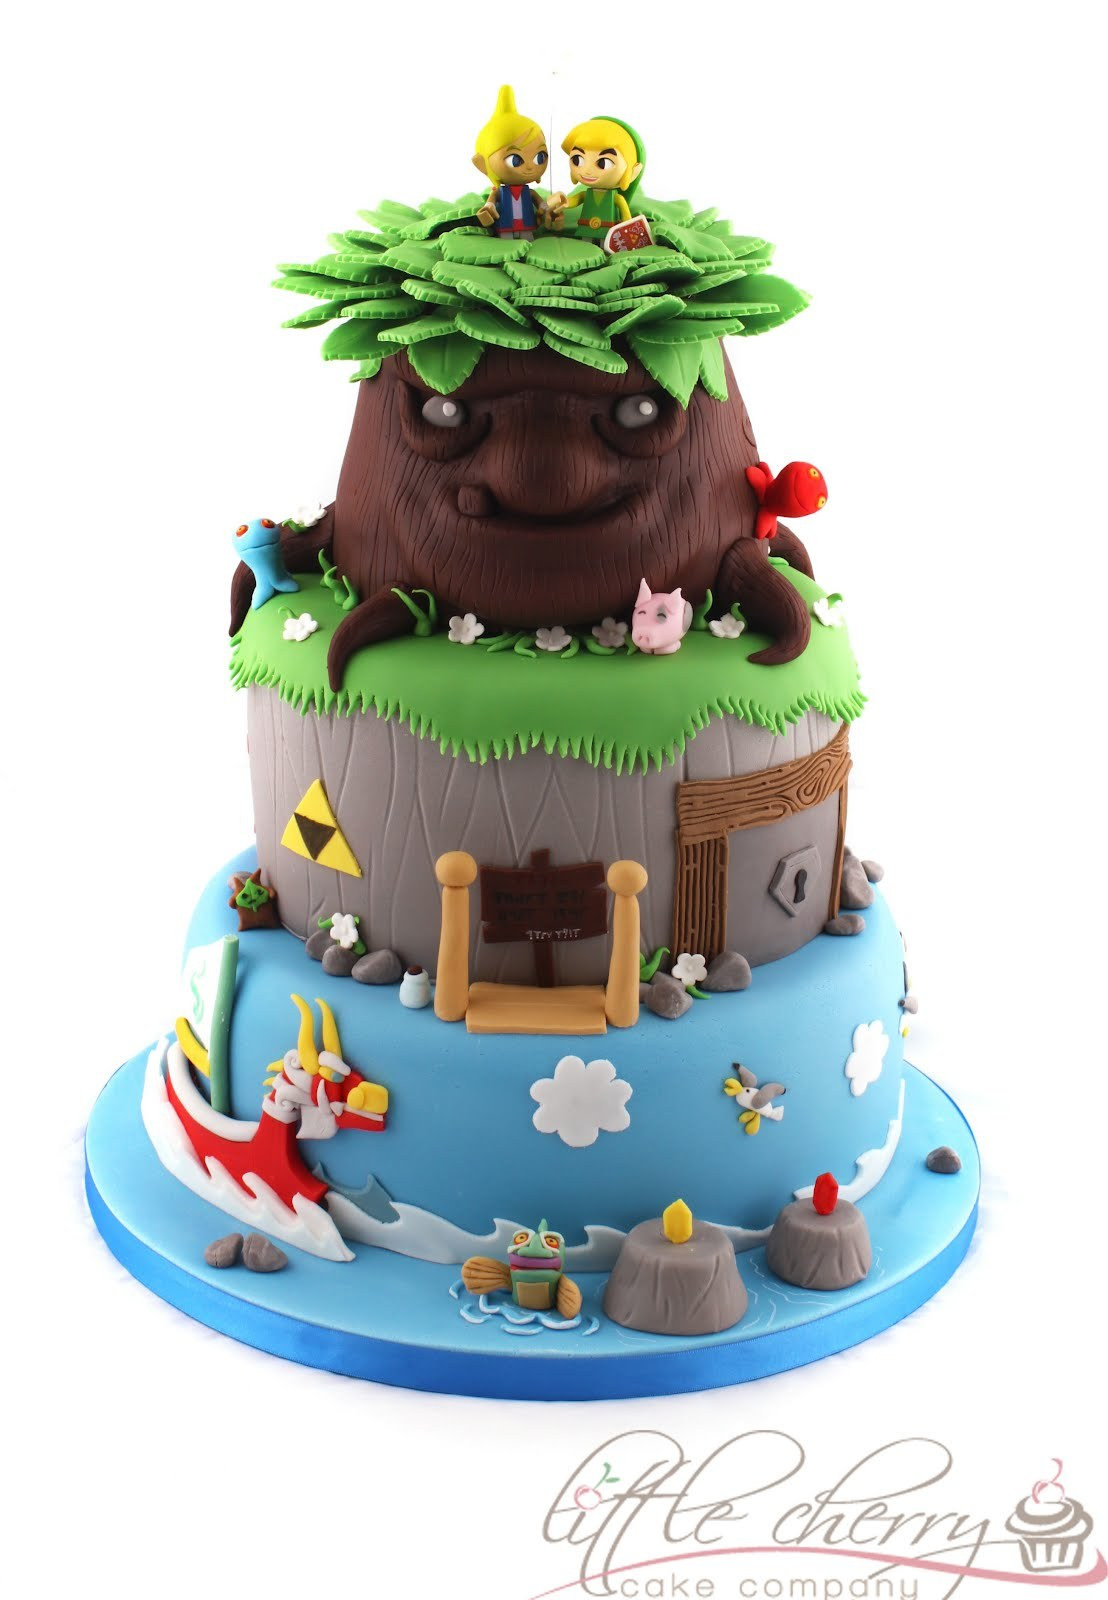 A Little Bit On The Geeky Cake Side: Absurdly awesome Windwaker cake by LITTLE CHERRY CAKE COMPANY. (via otlgaming)